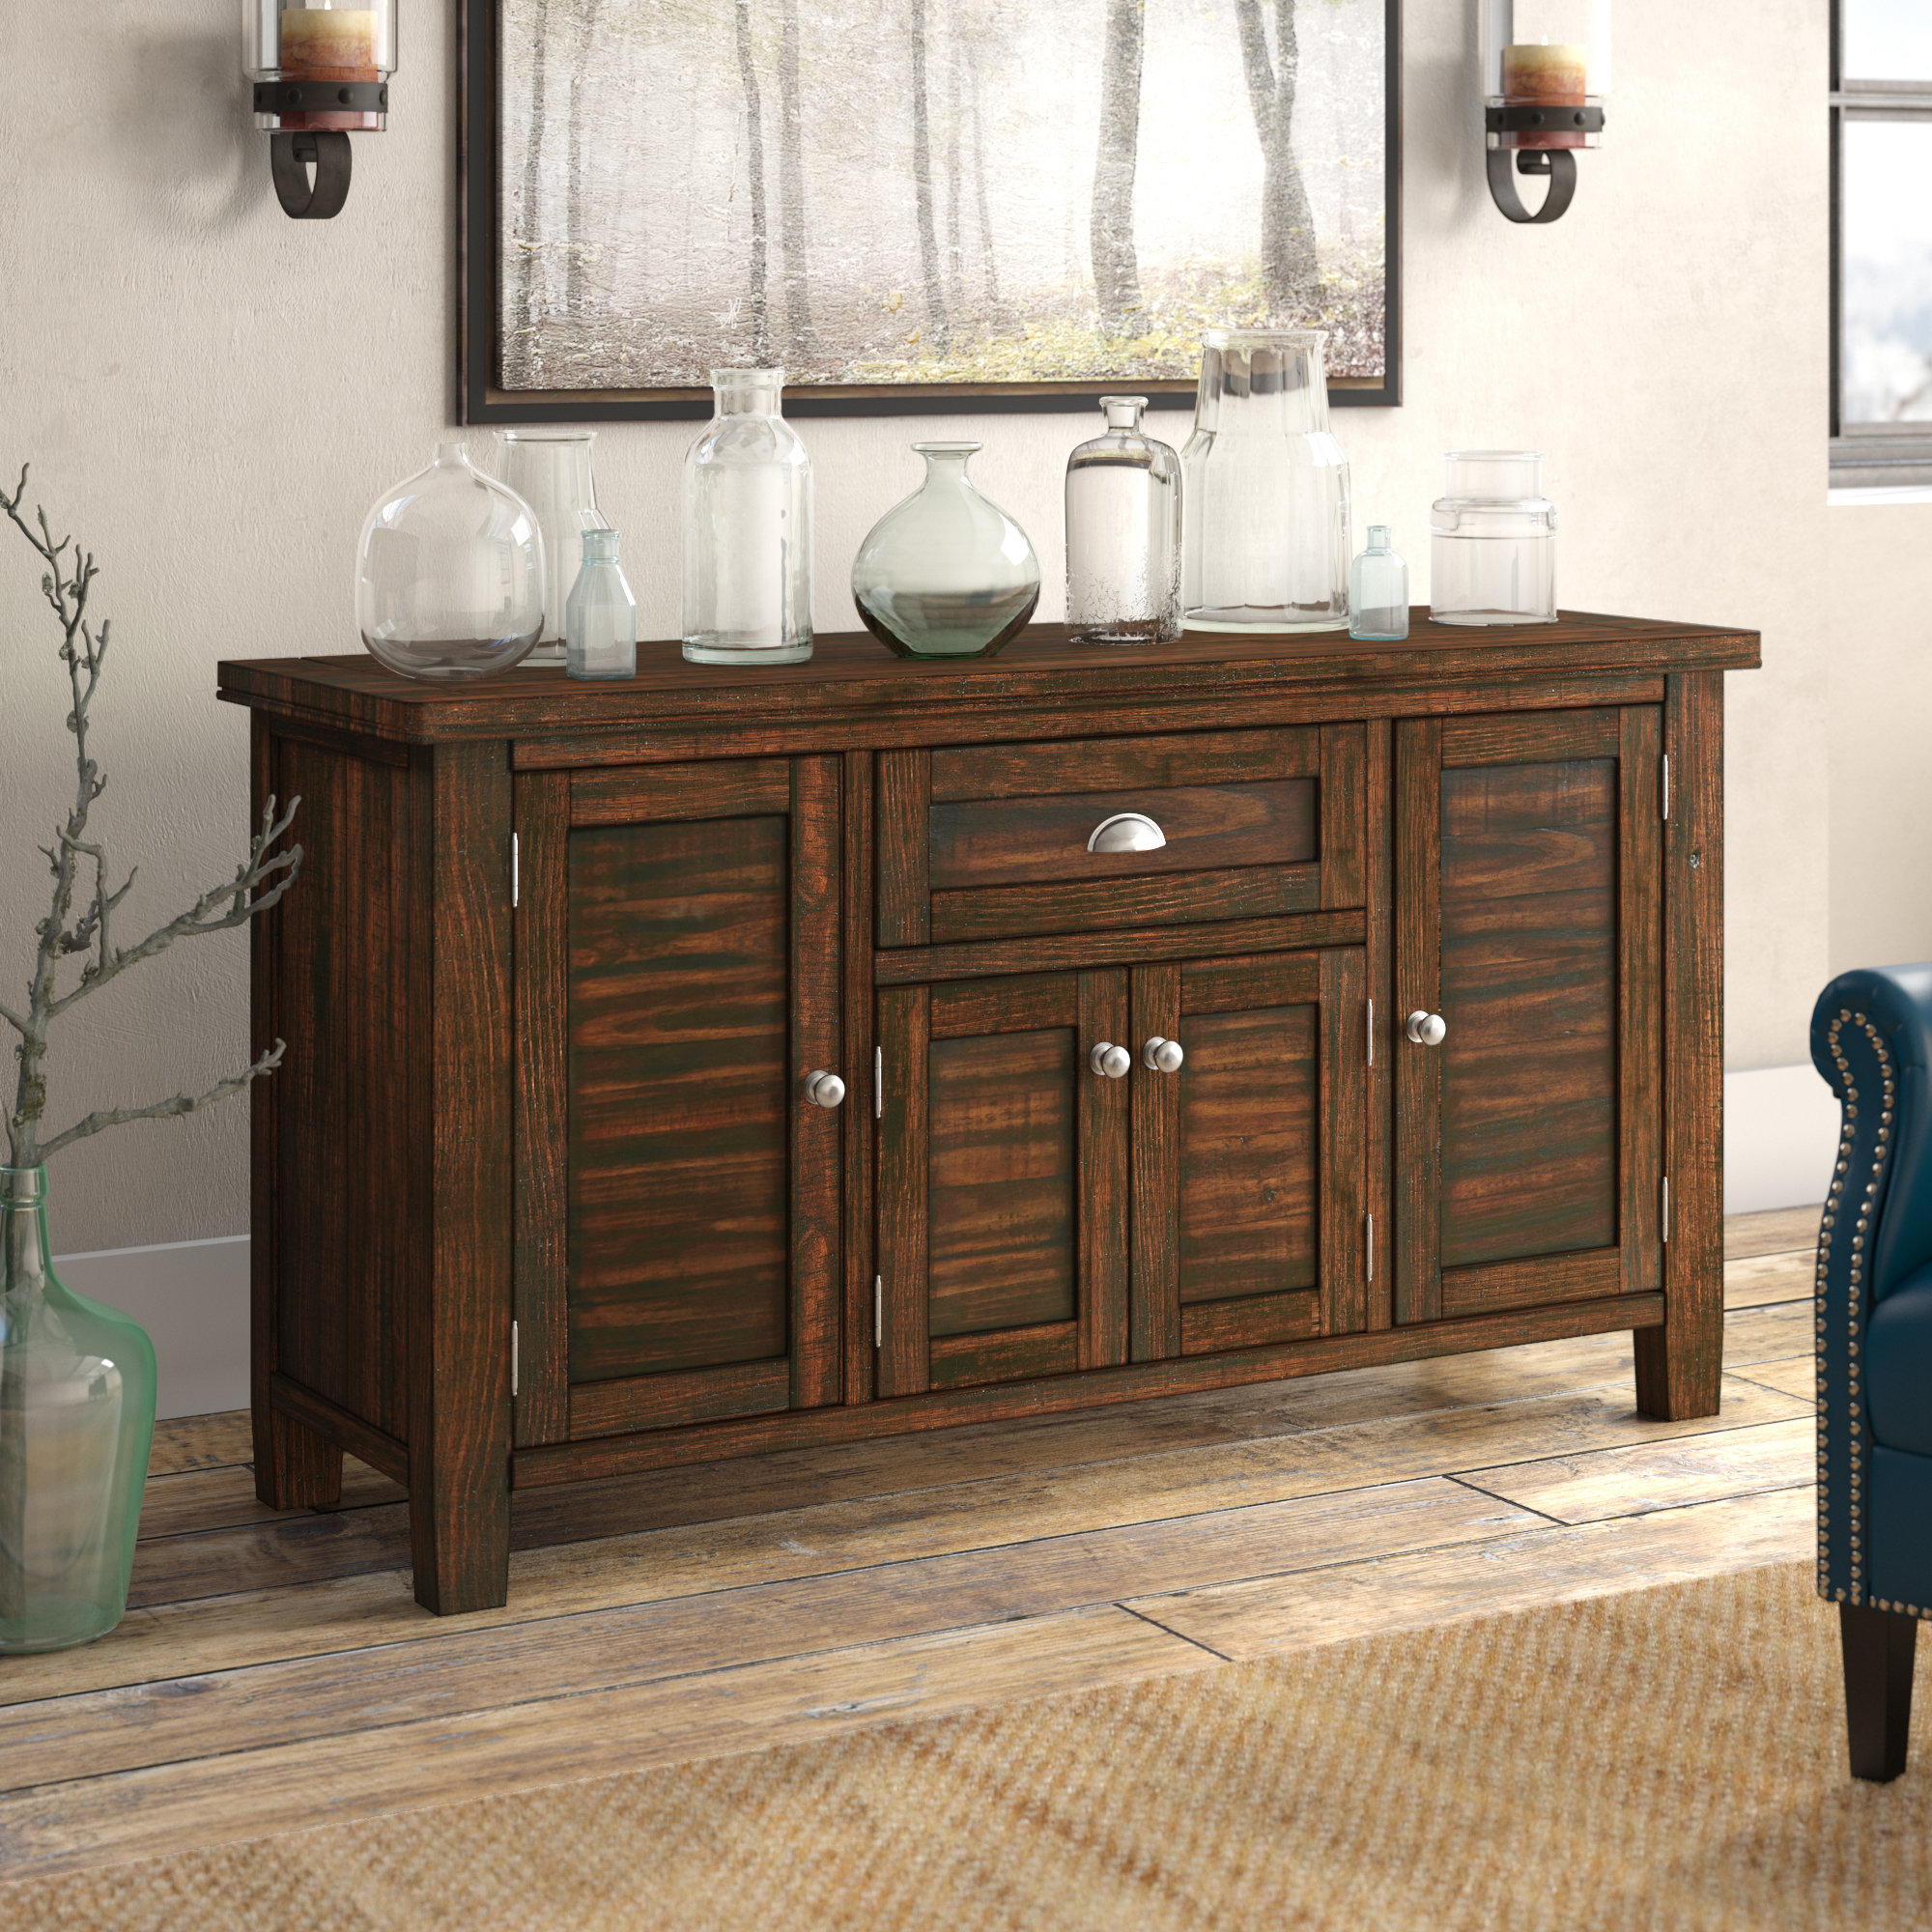 2019 Chaffins Sideboard Throughout Chaffins Sideboards (View 1 of 20)